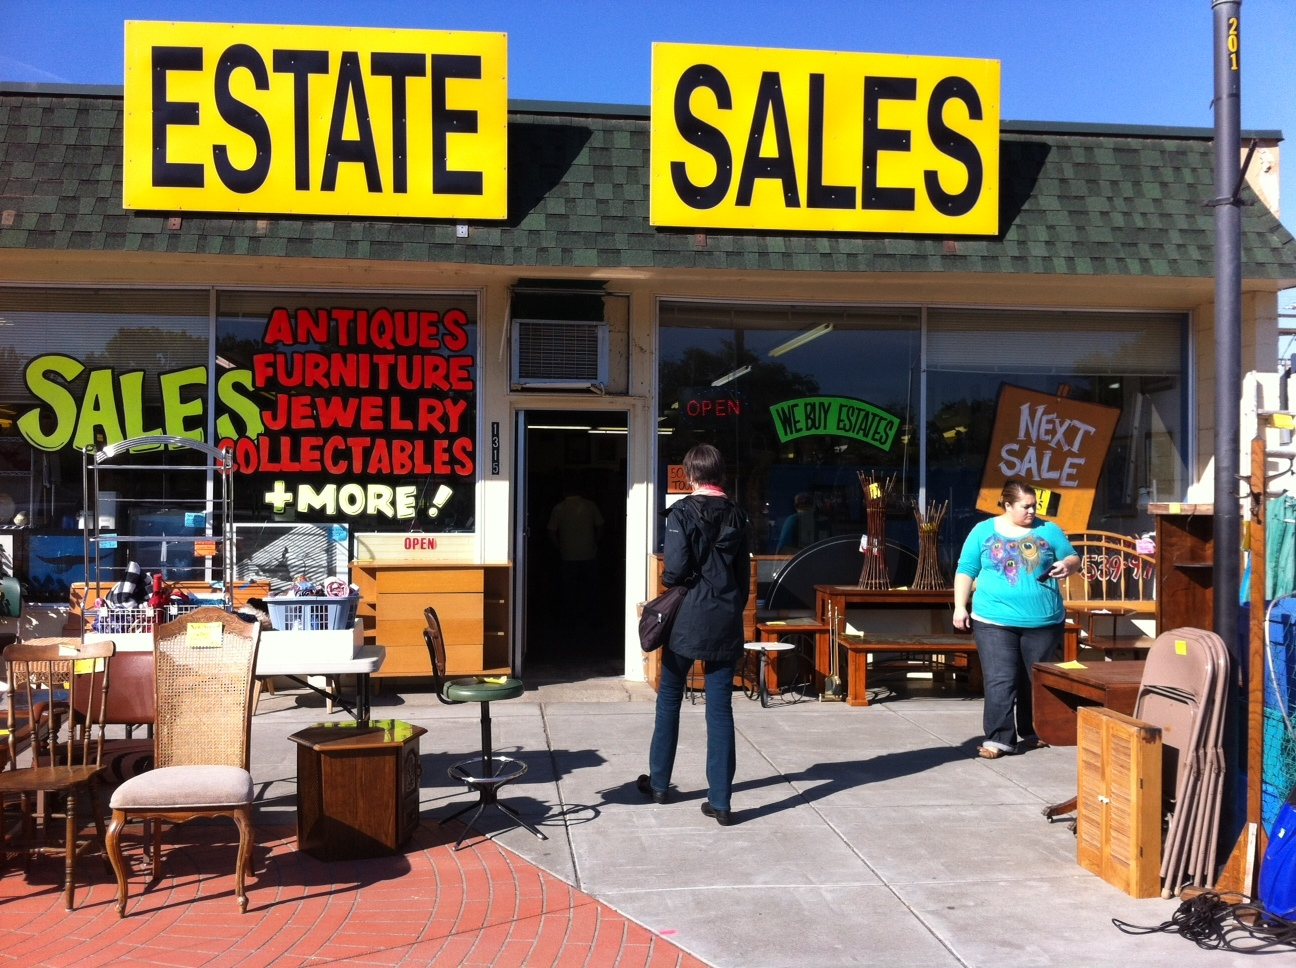 "No sooner had we left Becky's when we were at the Estate Sale.  While the Uptown Plaza doesn't have the upscale traditional tourist shops, it is a ""treasure hunters"" mecca."